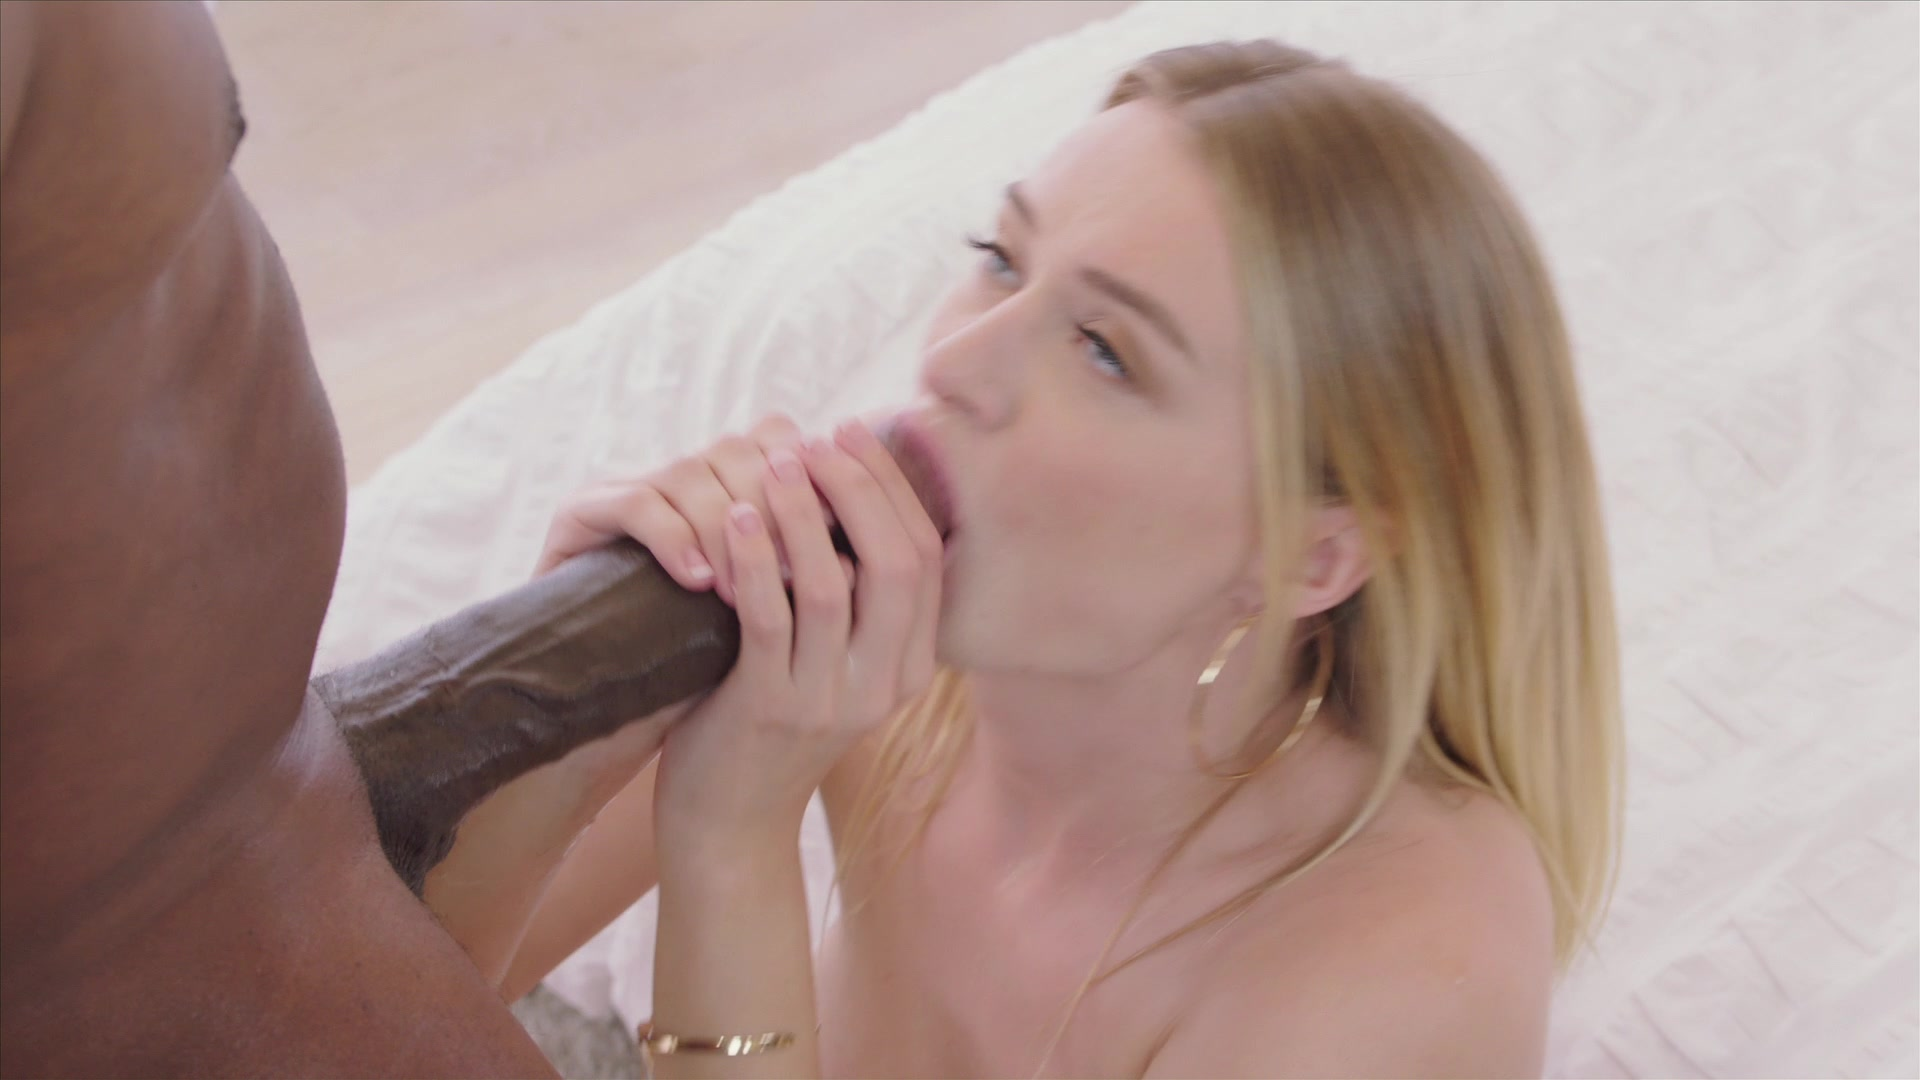 Middle-aged woman doing blowjob